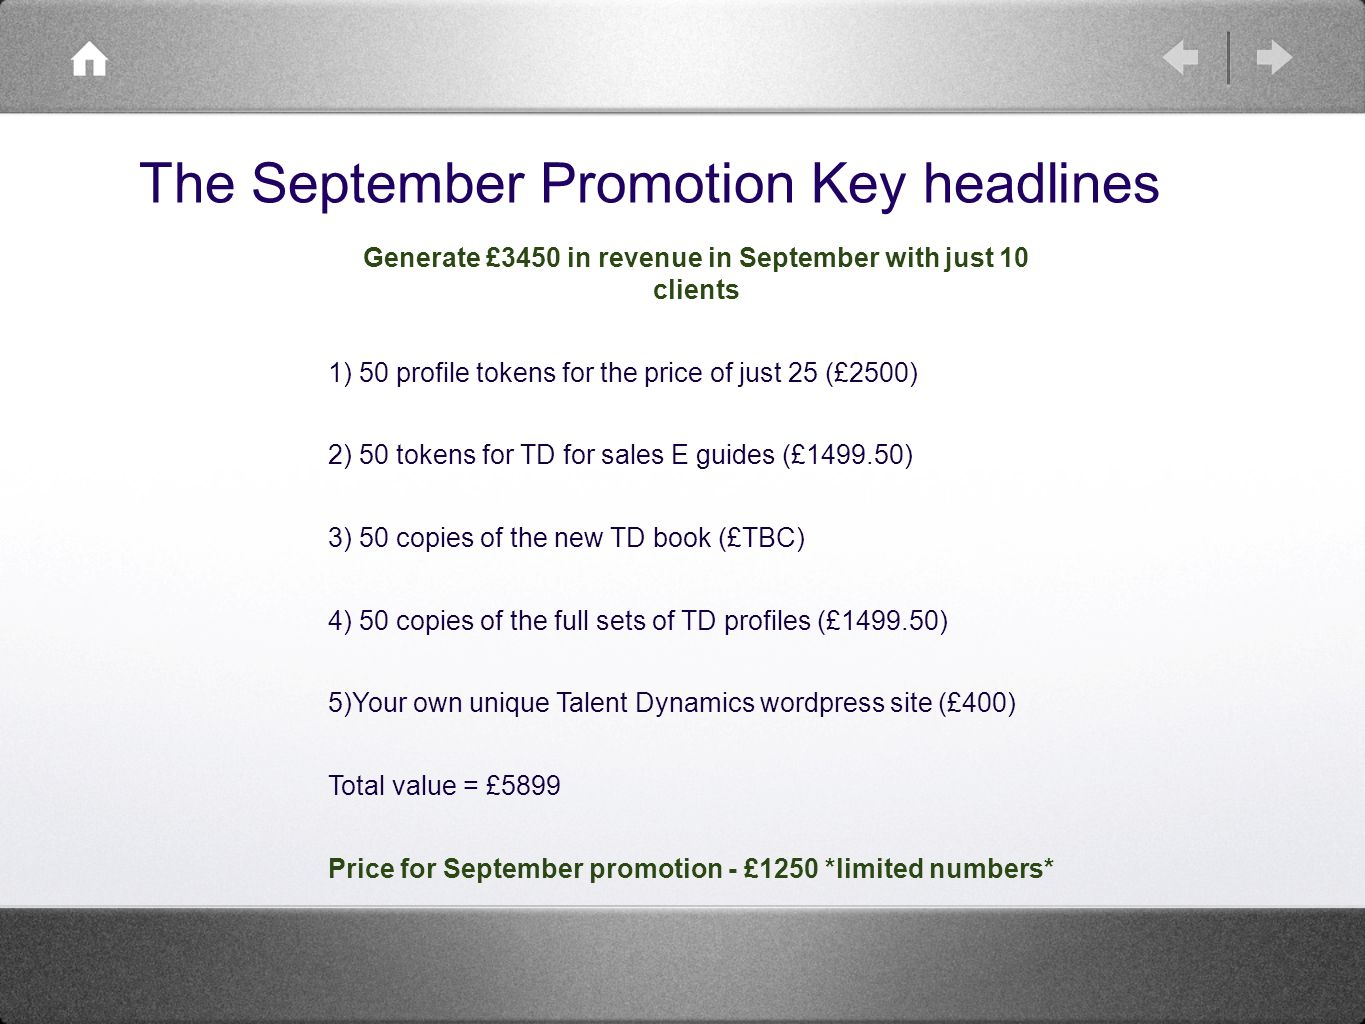 The September Promotion Key headlines Generate £3450 in revenue in September with just 10 clients 1) 50 profile tokens for the price of just 25 (£2500) 2) 50 tokens for TD for sales E guides (£ ) 3) 50 copies of the new TD book (£TBC) 4) 50 copies of the full sets of TD profiles (£ ) 5)Your own unique Talent Dynamics wordpress site (£400) Total value = £5899 Price for September promotion - £1250 *limited numbers*